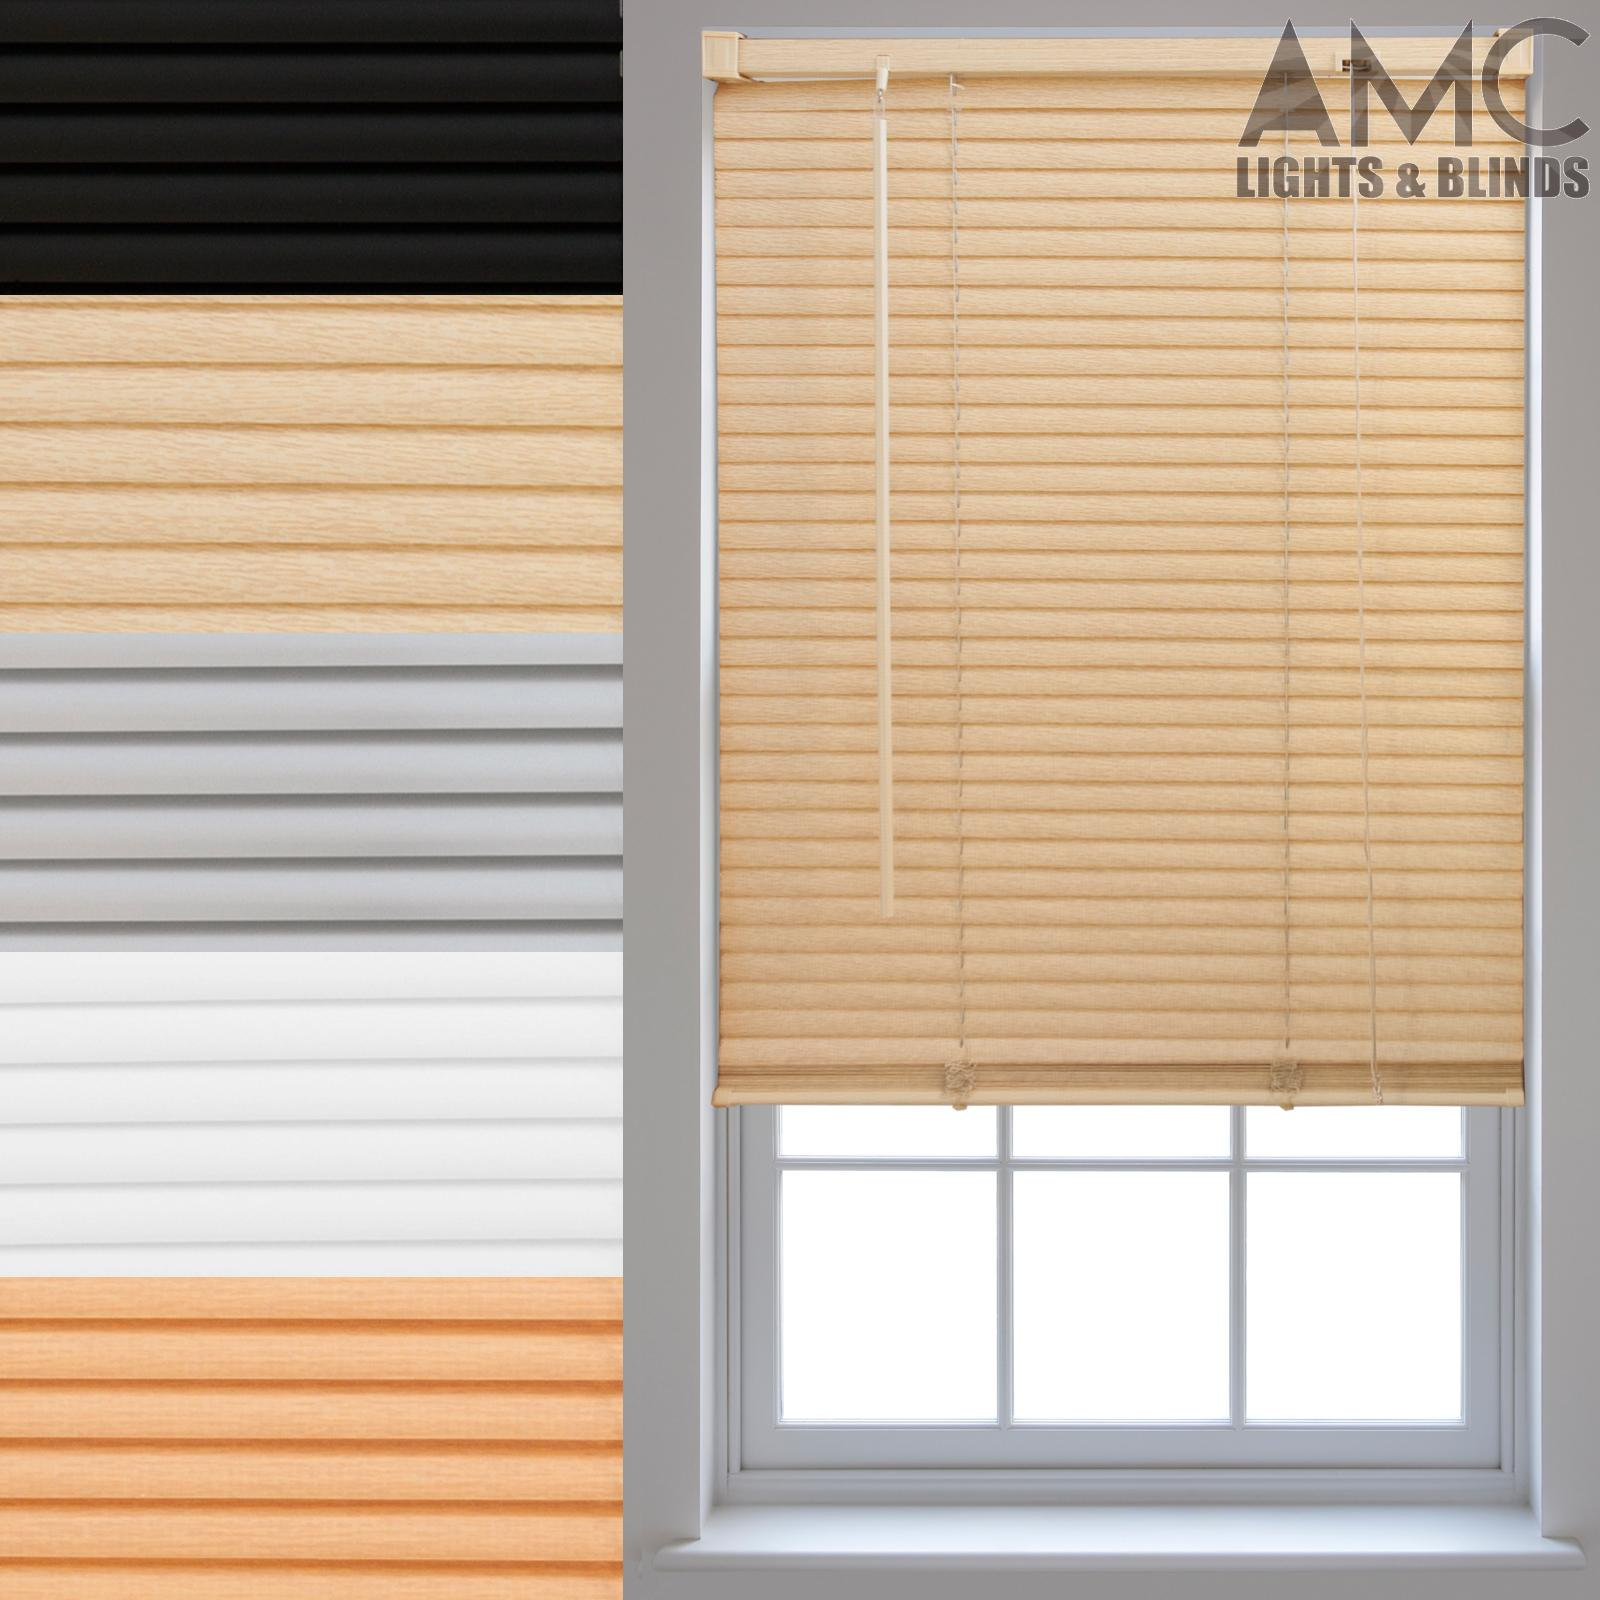 pvc venetian blinds made to measure window home office. Black Bedroom Furniture Sets. Home Design Ideas